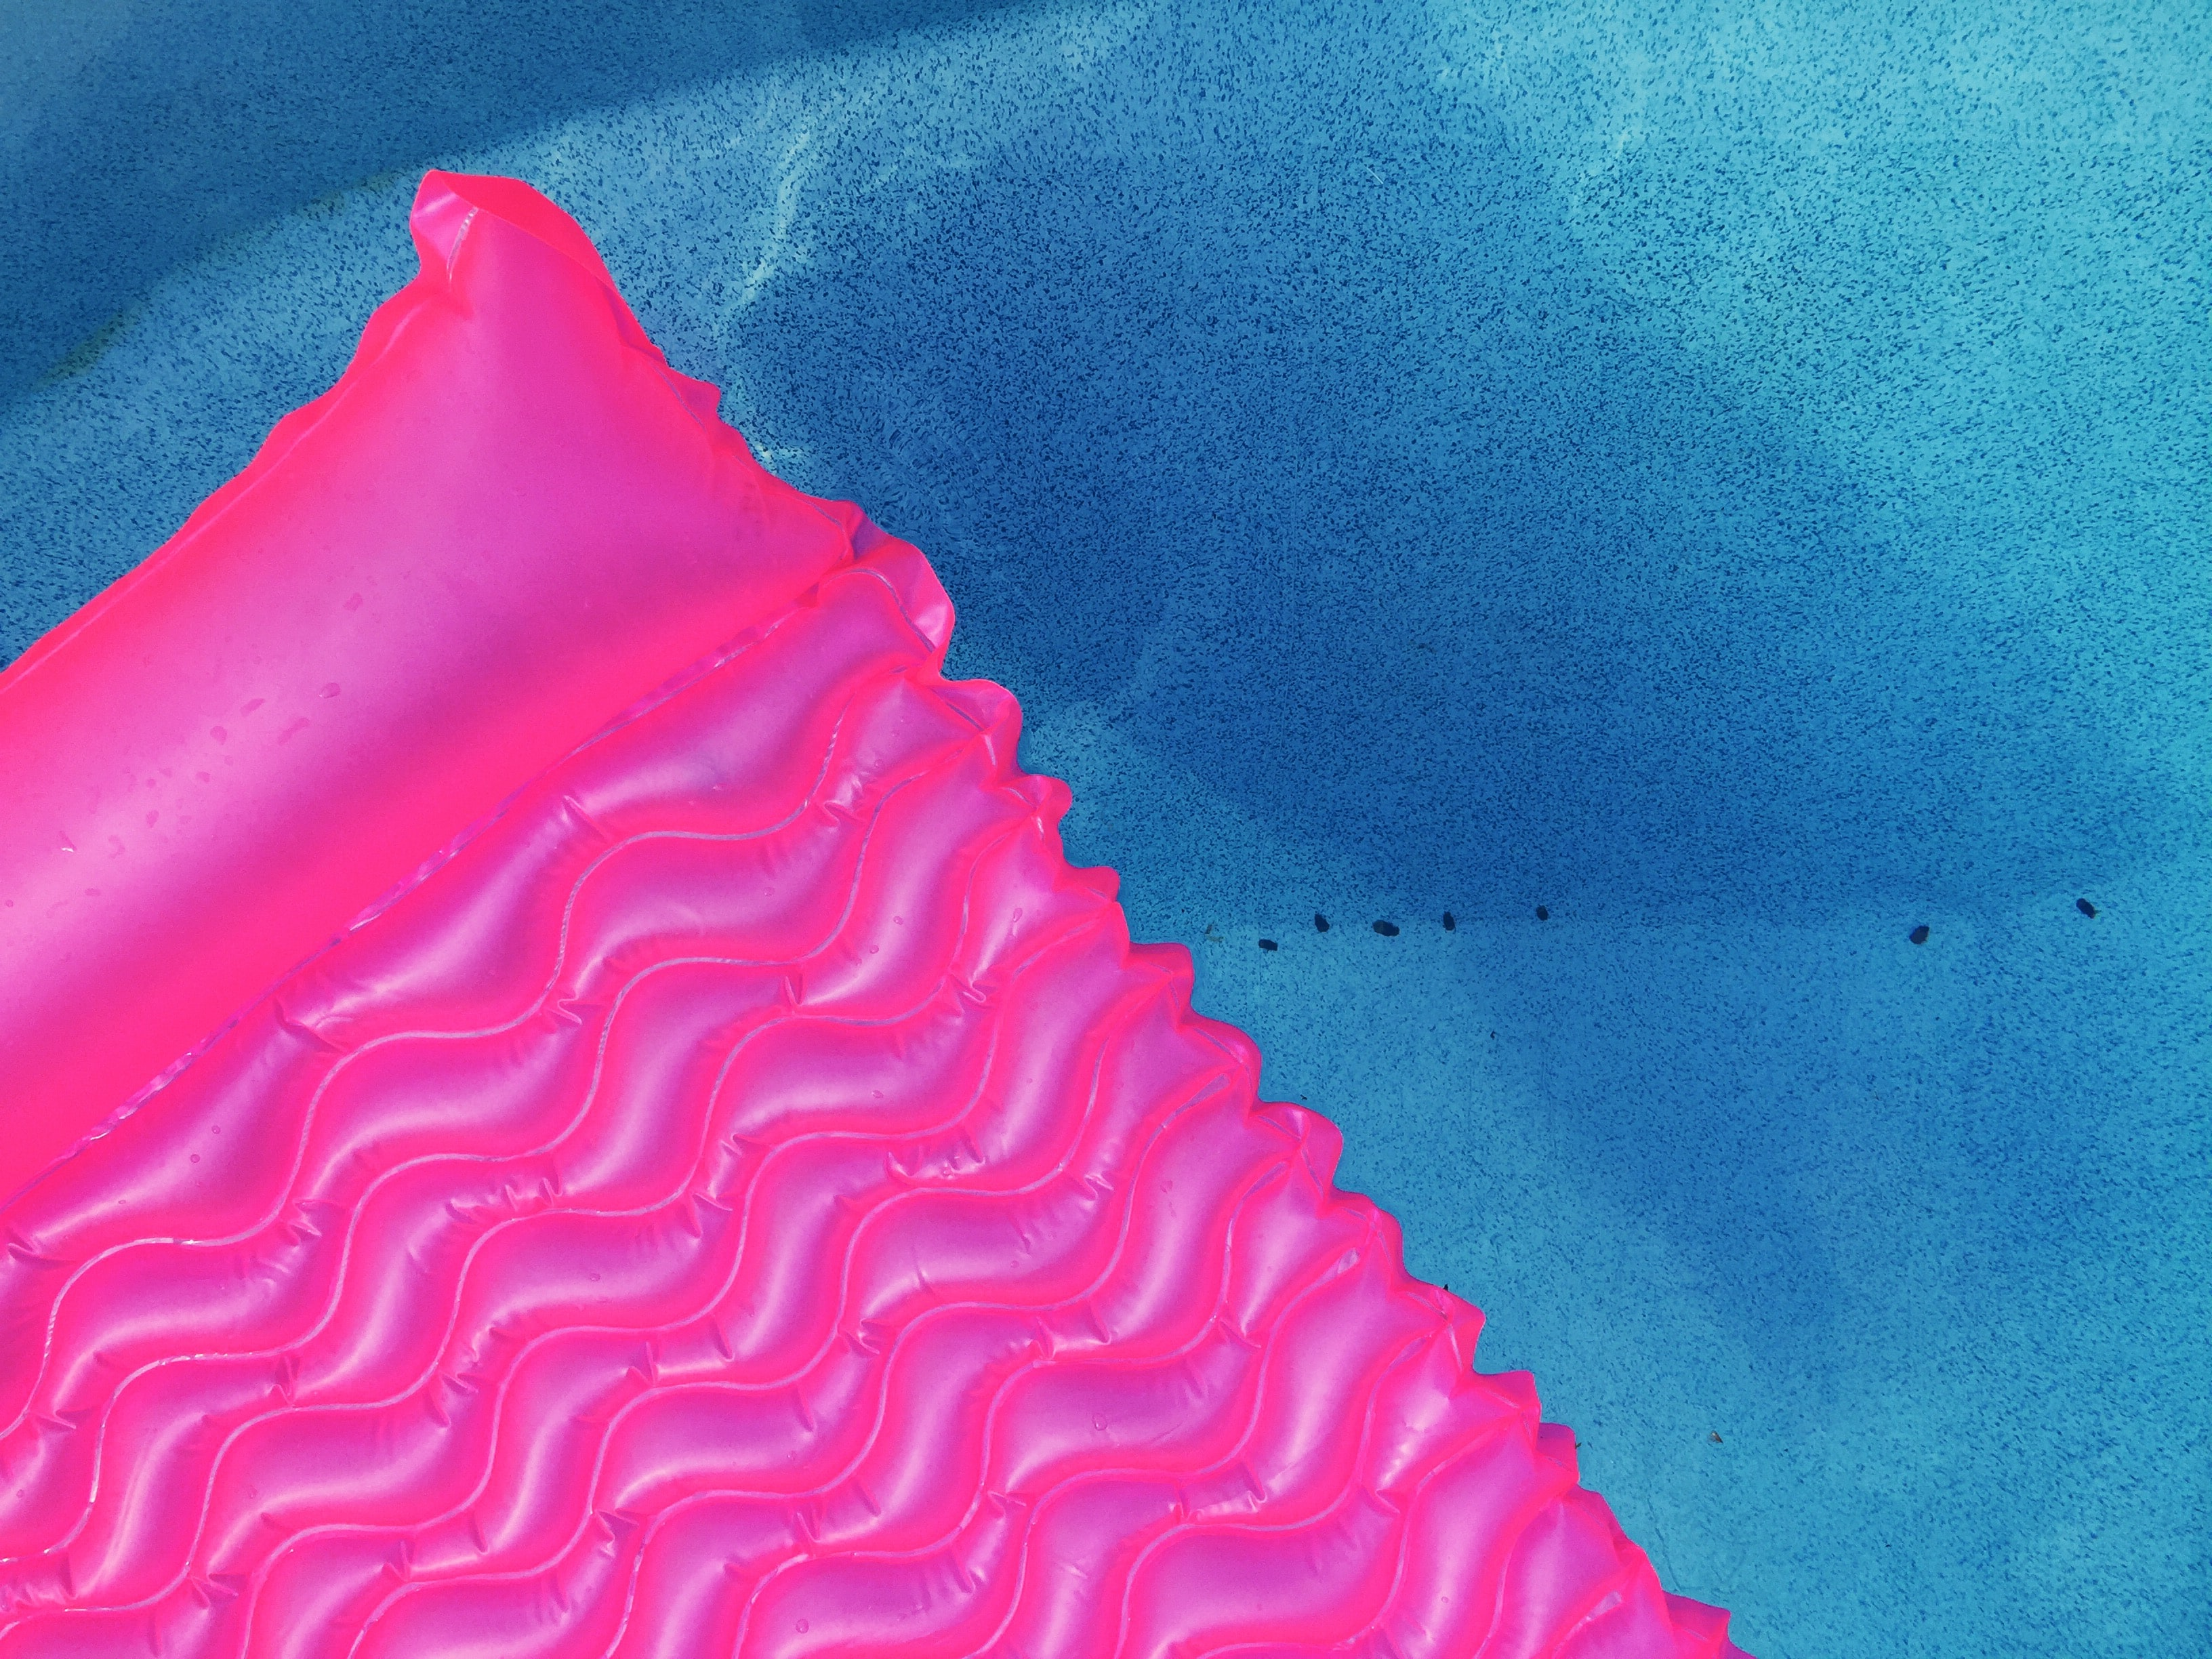 Bright pink pool floaties gliding along blue waters